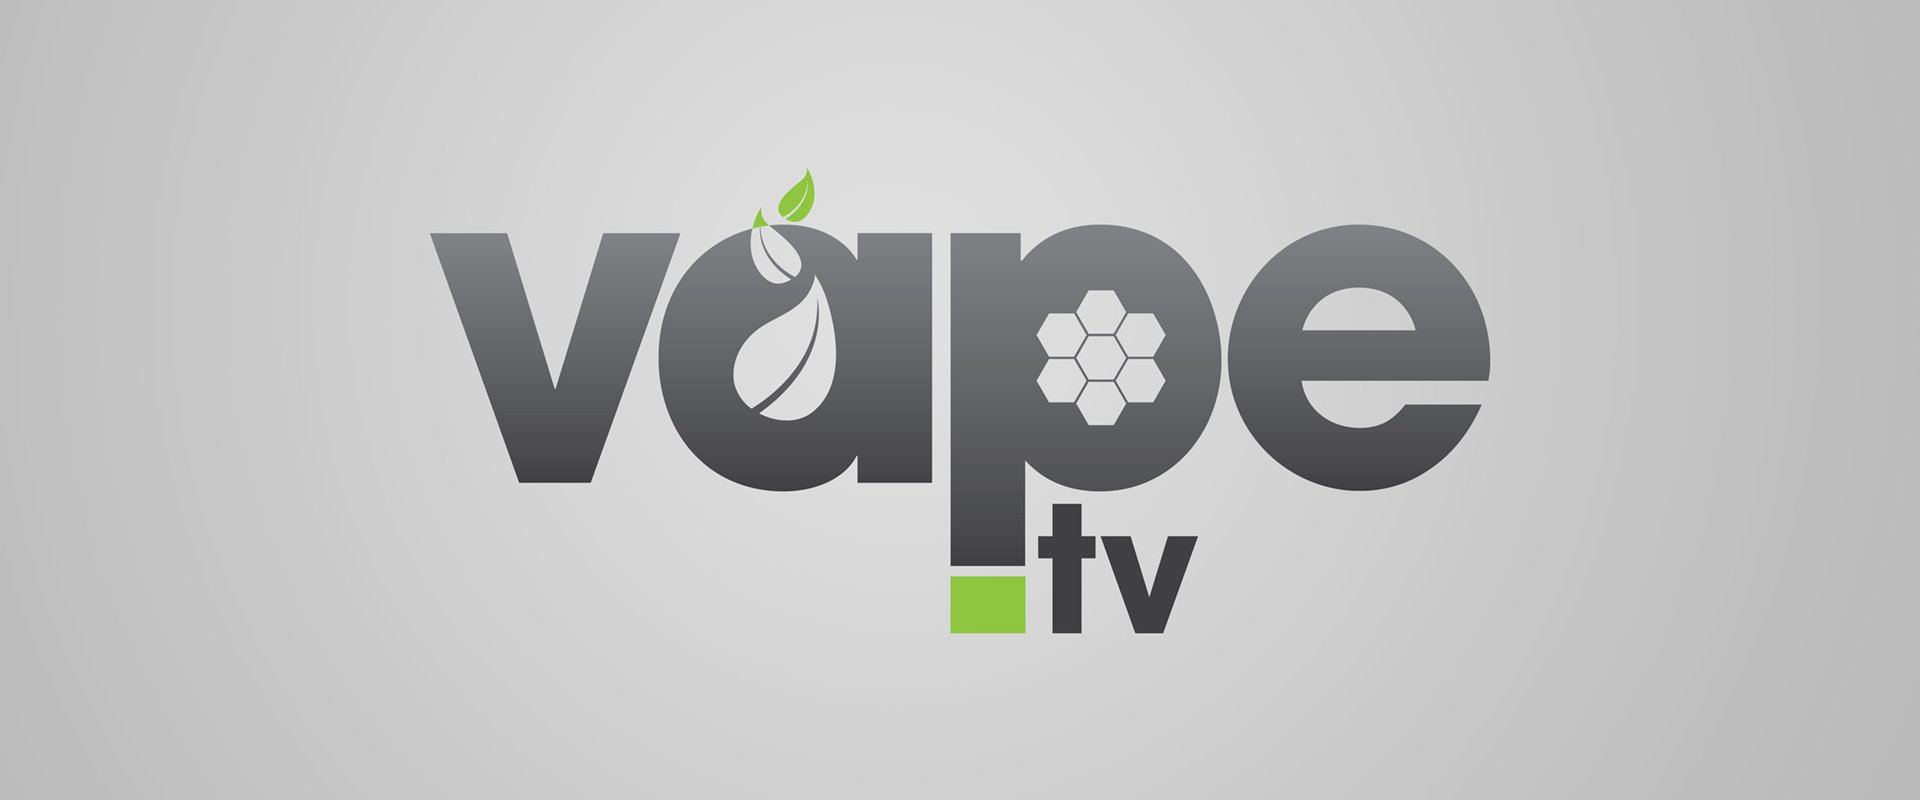 Logo design for Vape.tv with a grey gradient and green leaves.